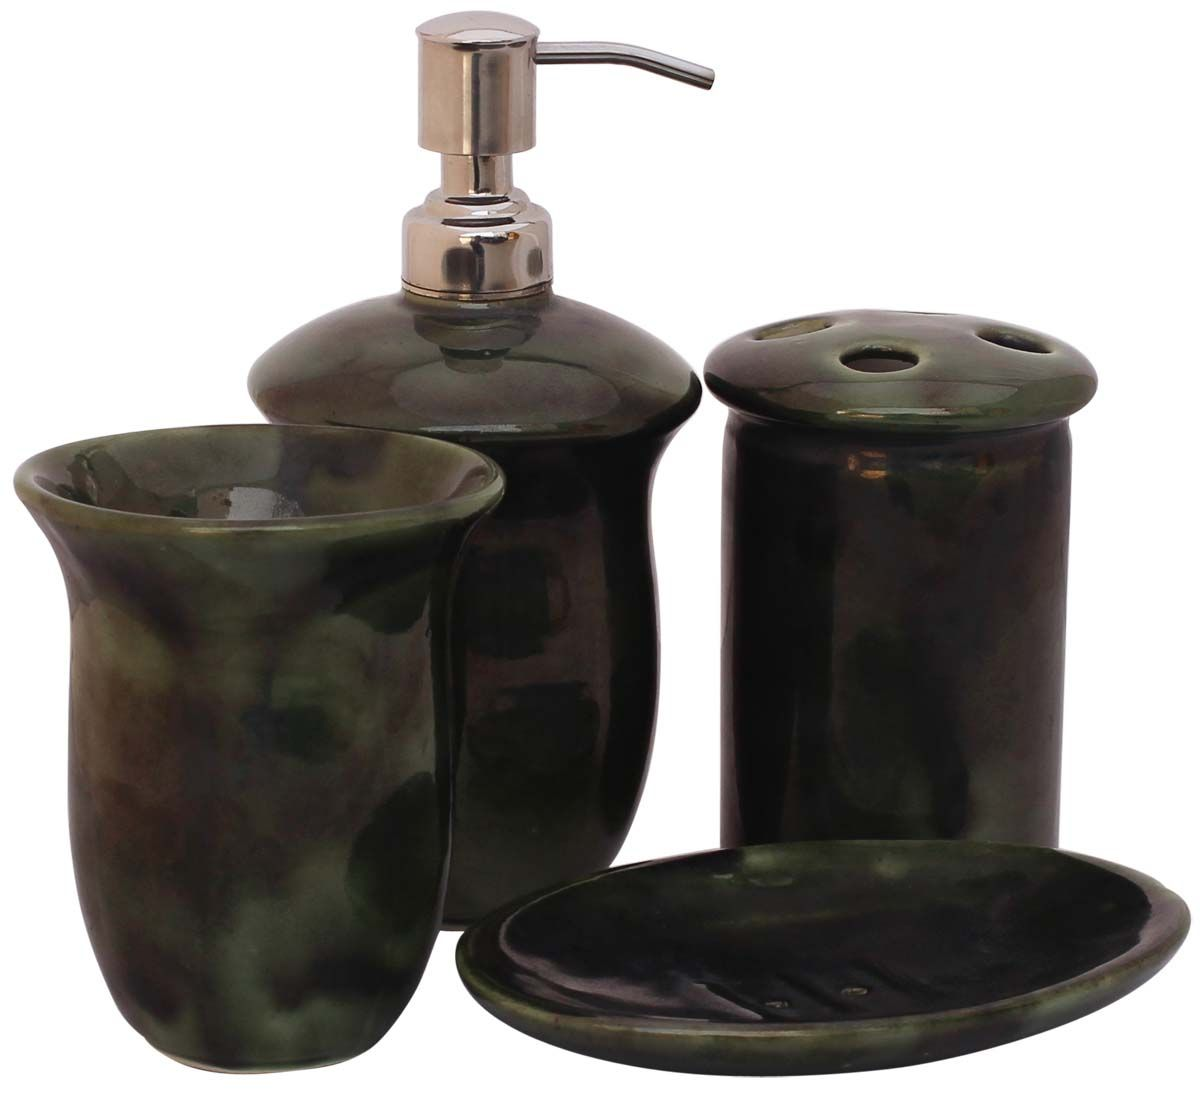 wholesale handmade set of 4 bathroom accessories in olive green from wholesale distributors in indiadecorative soap dish tumbler toothbrush holder - Bathroom Accessories Distributors